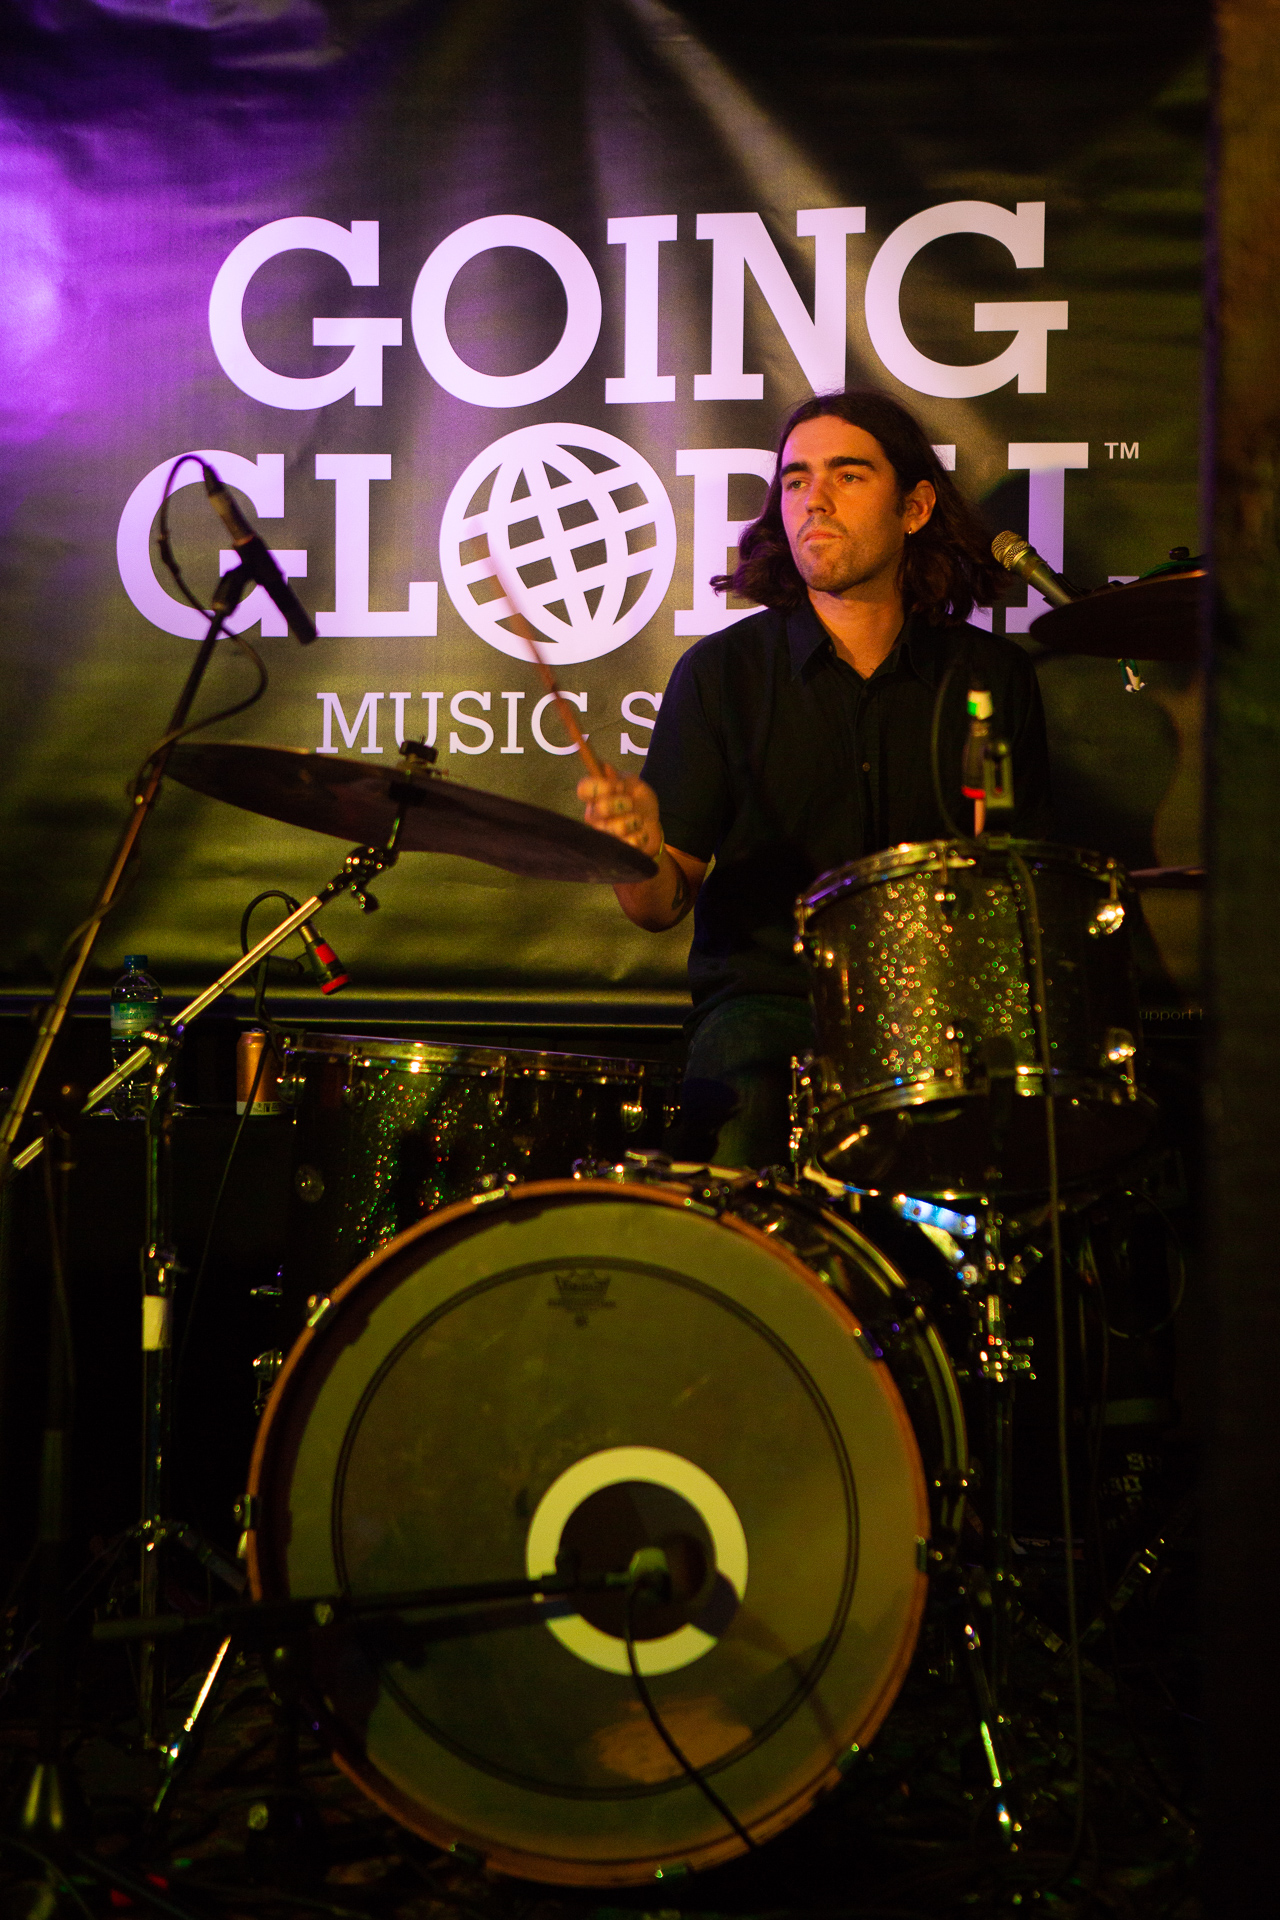 Jed Parsons - Going Global Presents, Wine Cellar and Whammy Bar, Auckland